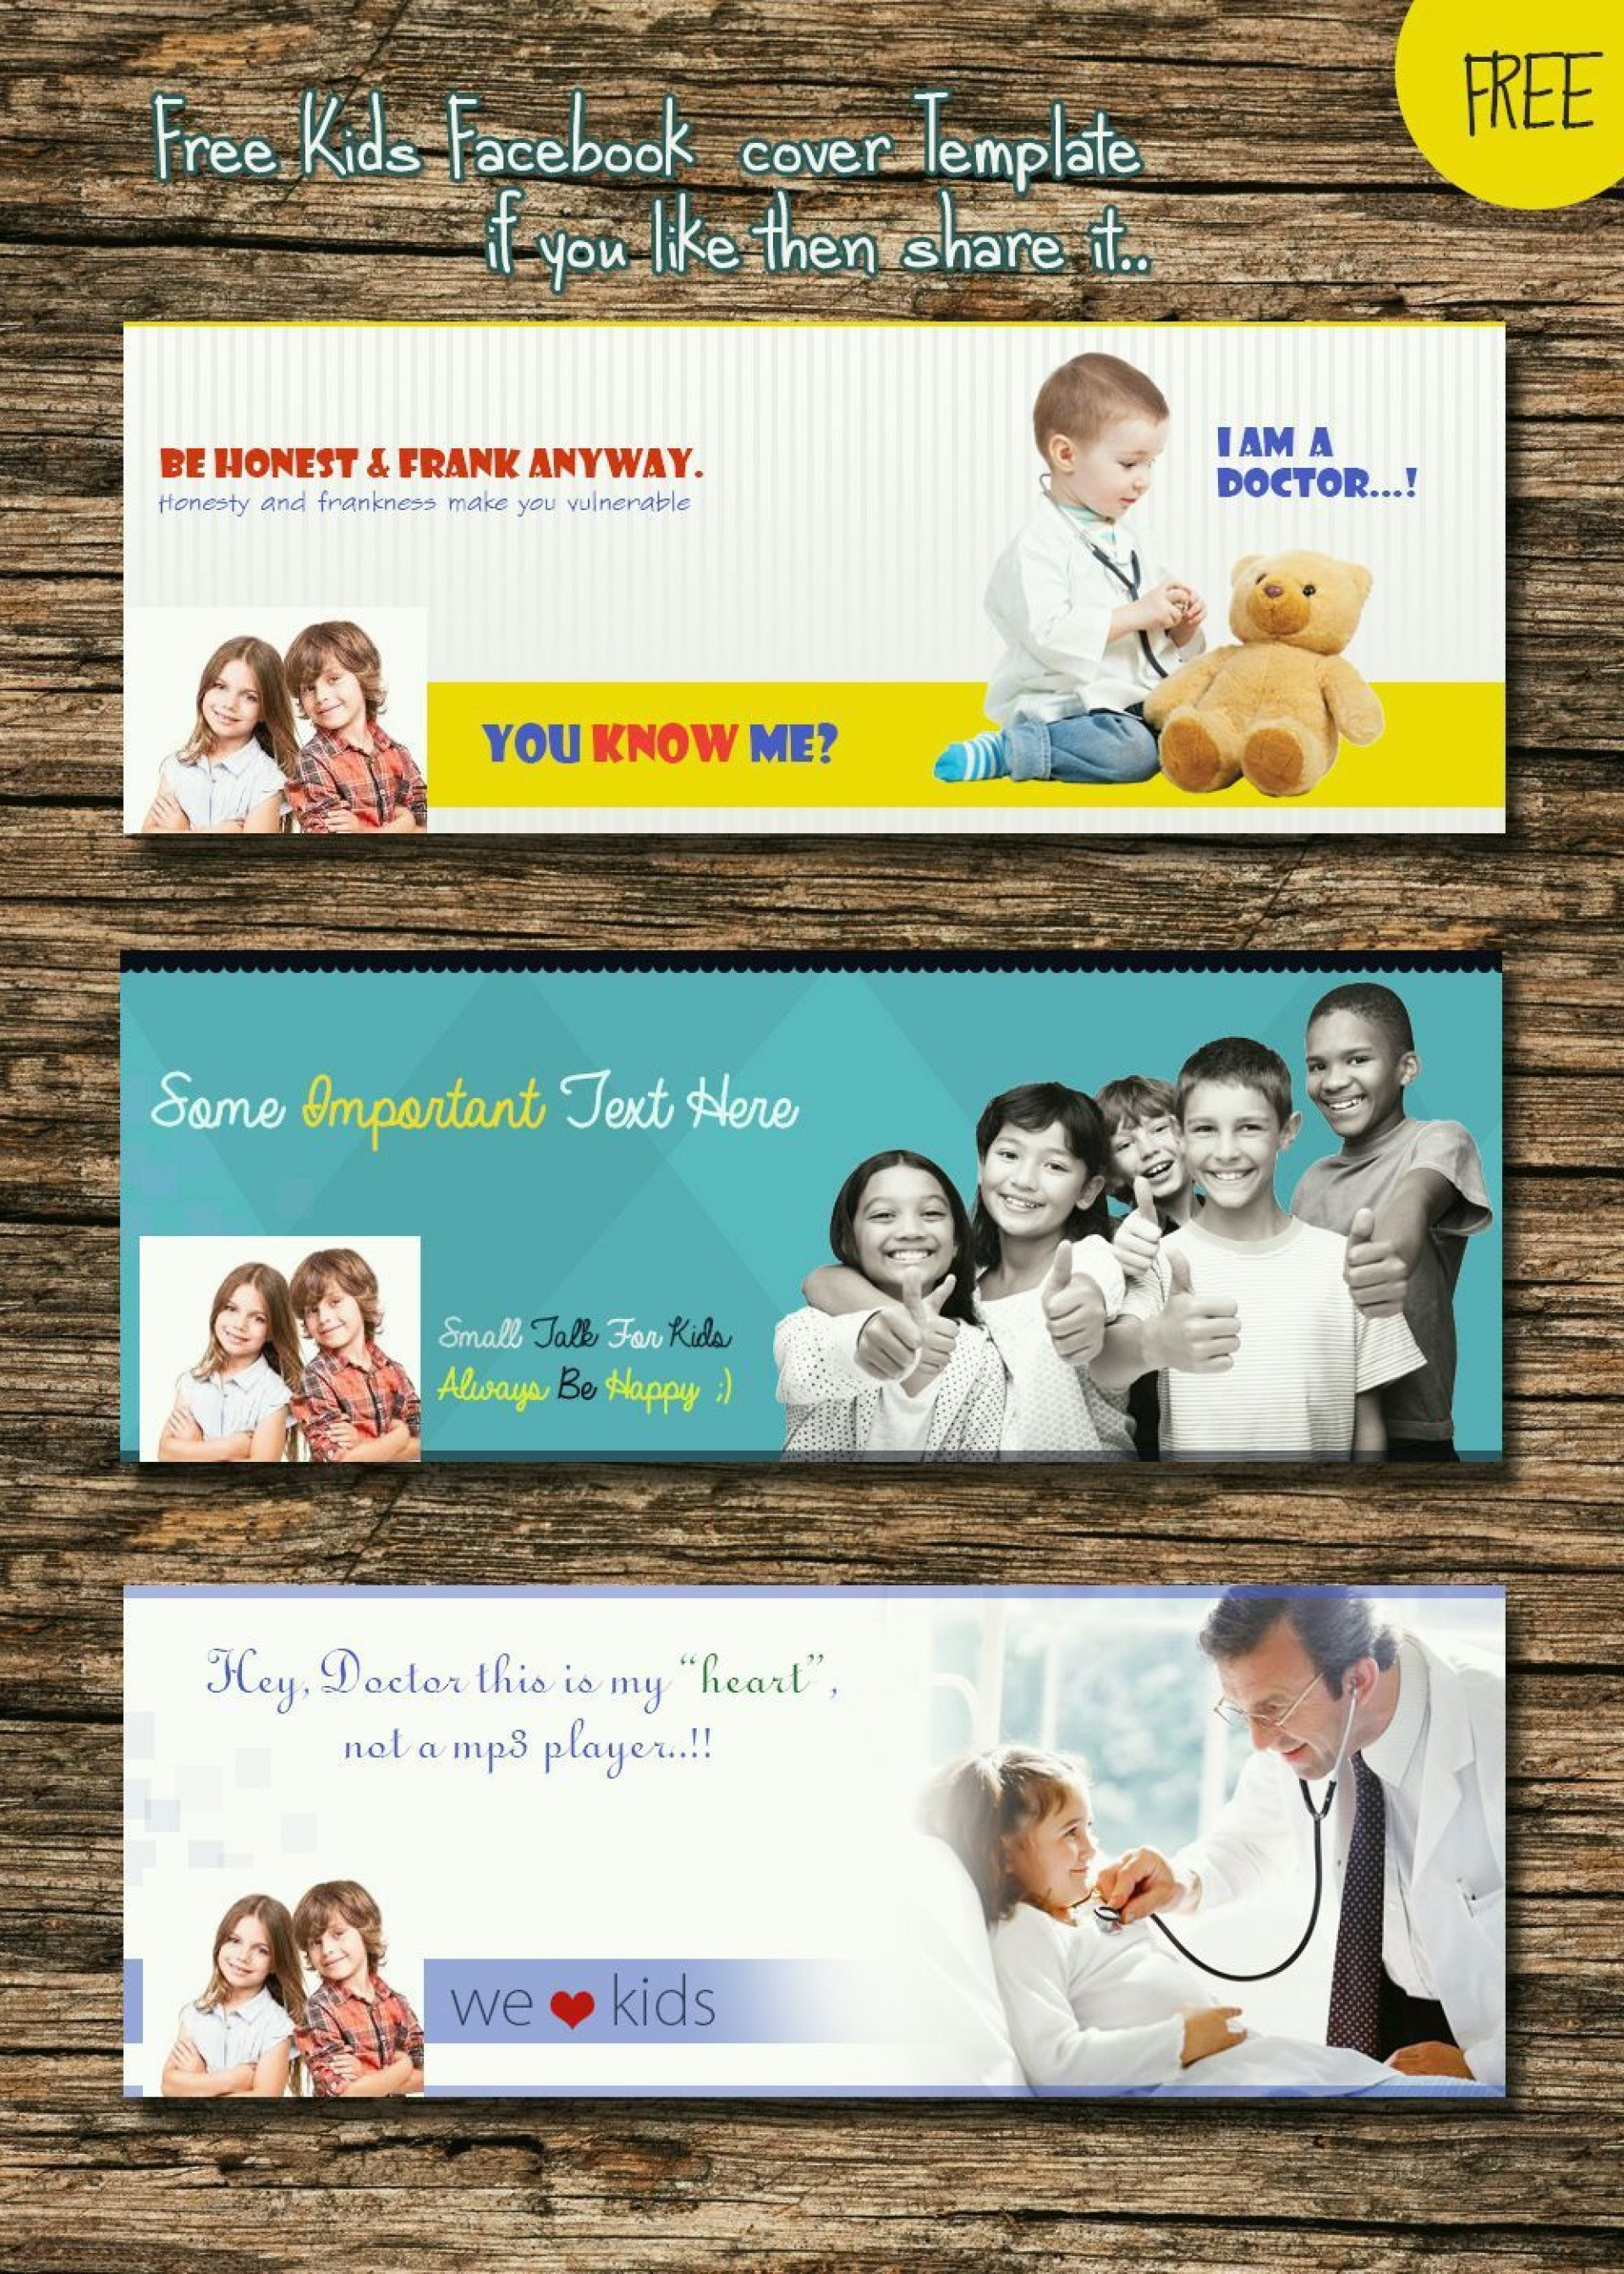 000 Stunning Free Facebook Cover Template Highest Quality  Templates Photoshop1920